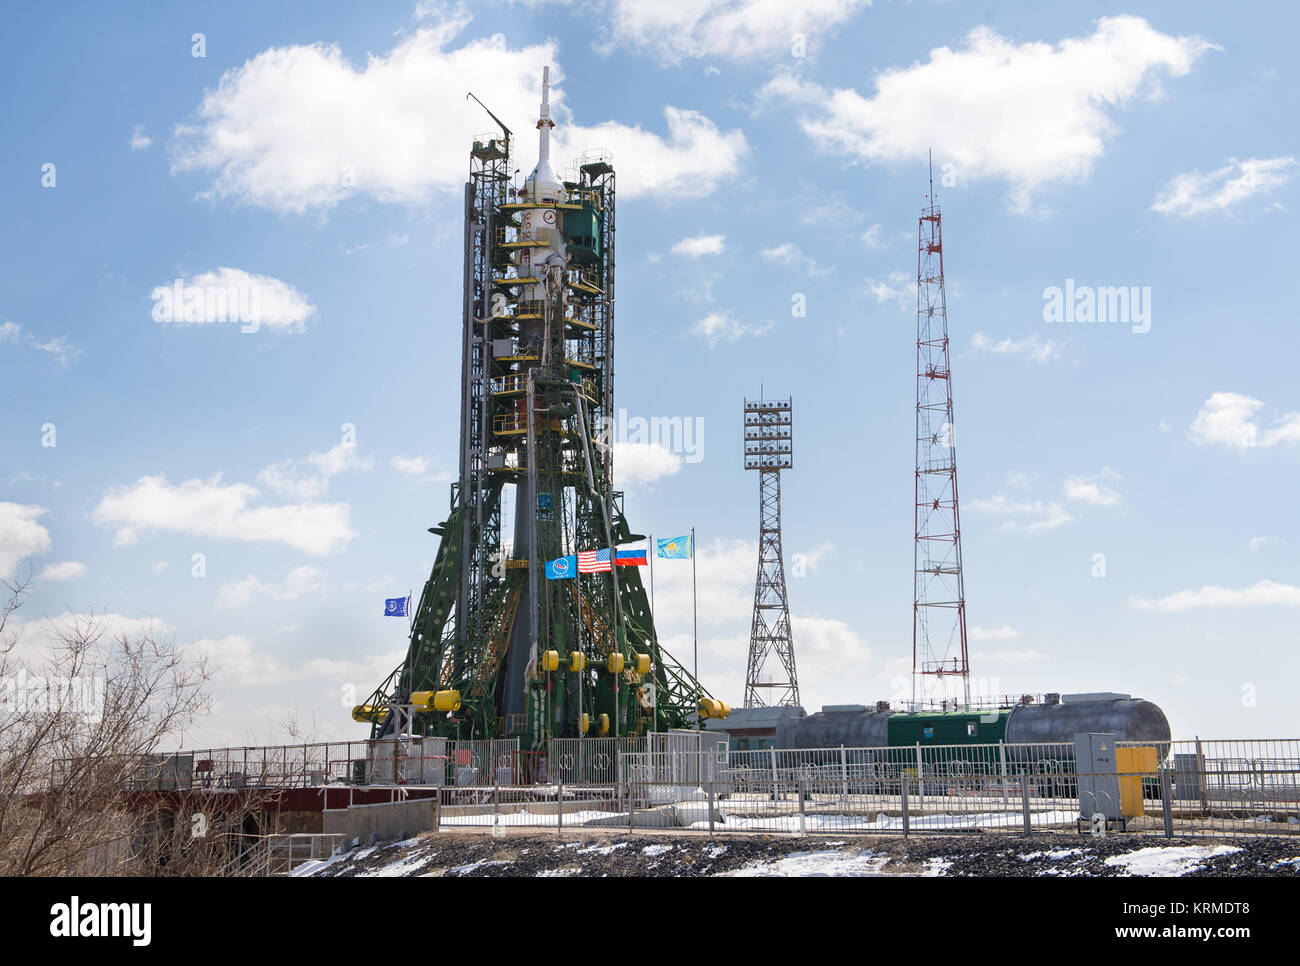 The Soyuz TMA-20M spacecraft is seen on the launch pad at the Baikonur Cosmodrome after it was blessed by an Orthodox - Stock Image